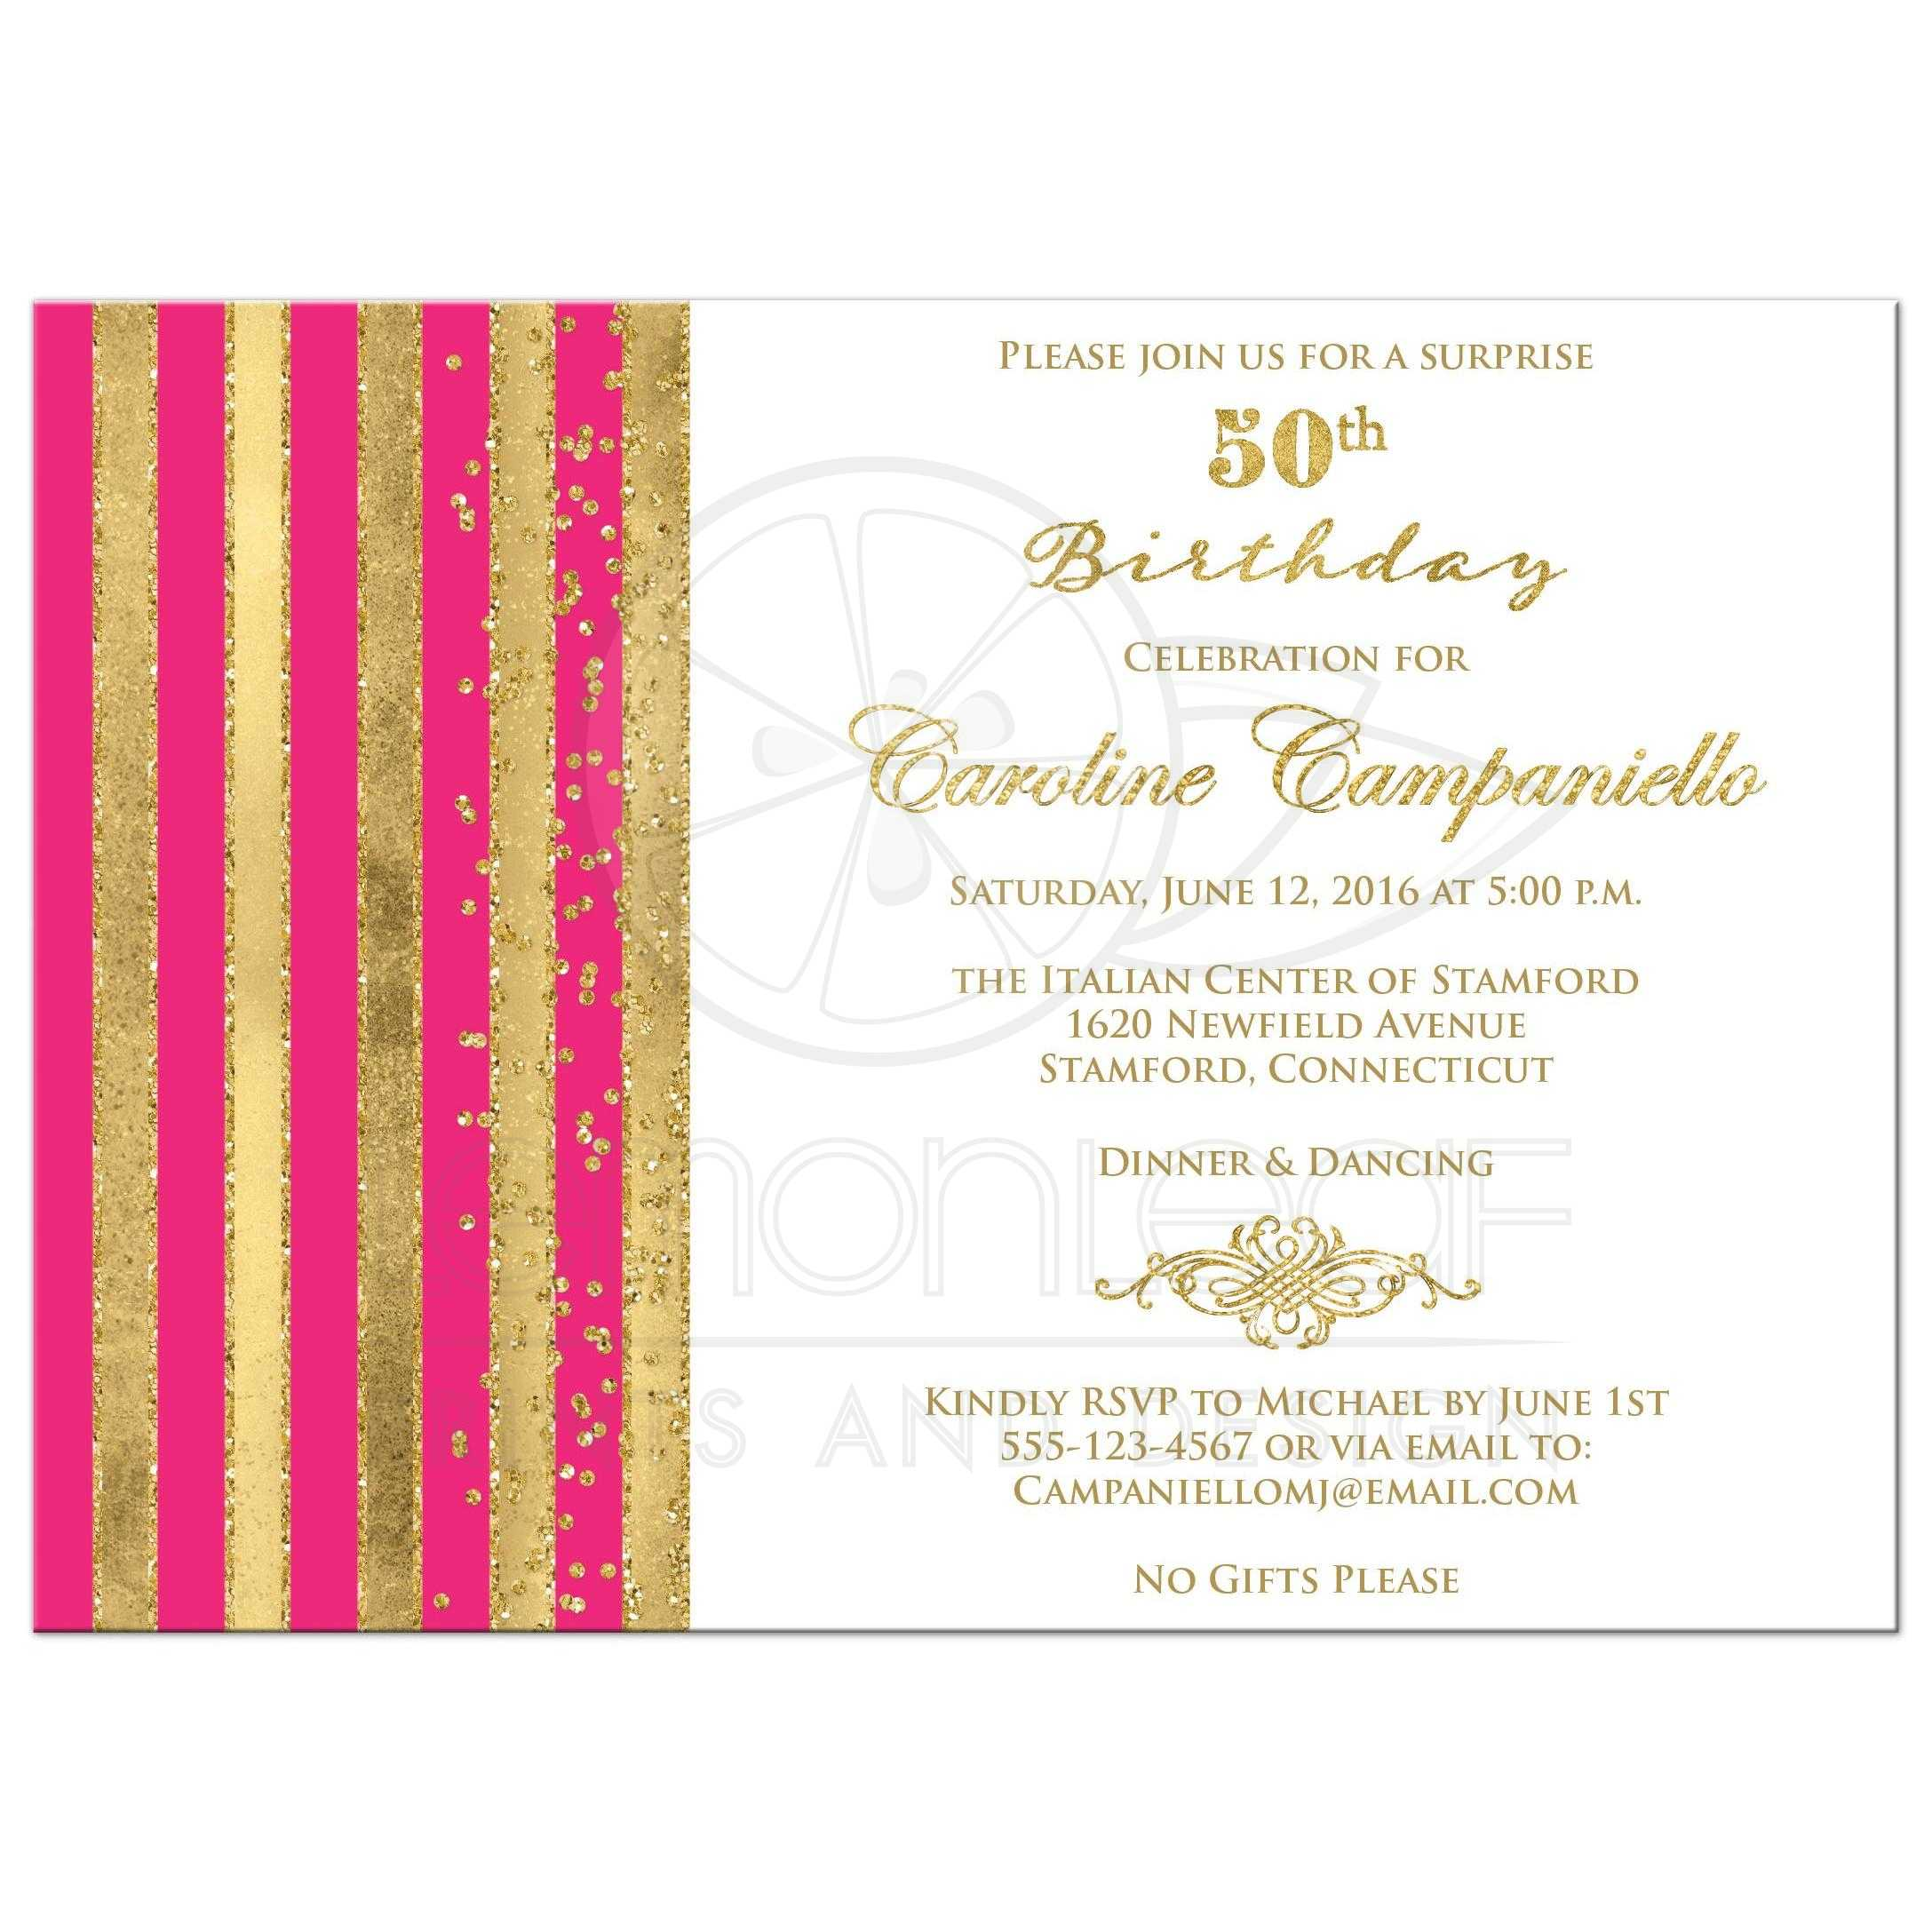 50th birthday invitation hot pink white gold stripes faux great elegant hot fuchsia pink and white 50th birthday party invitation with faux gold foil stripes stopboris Gallery